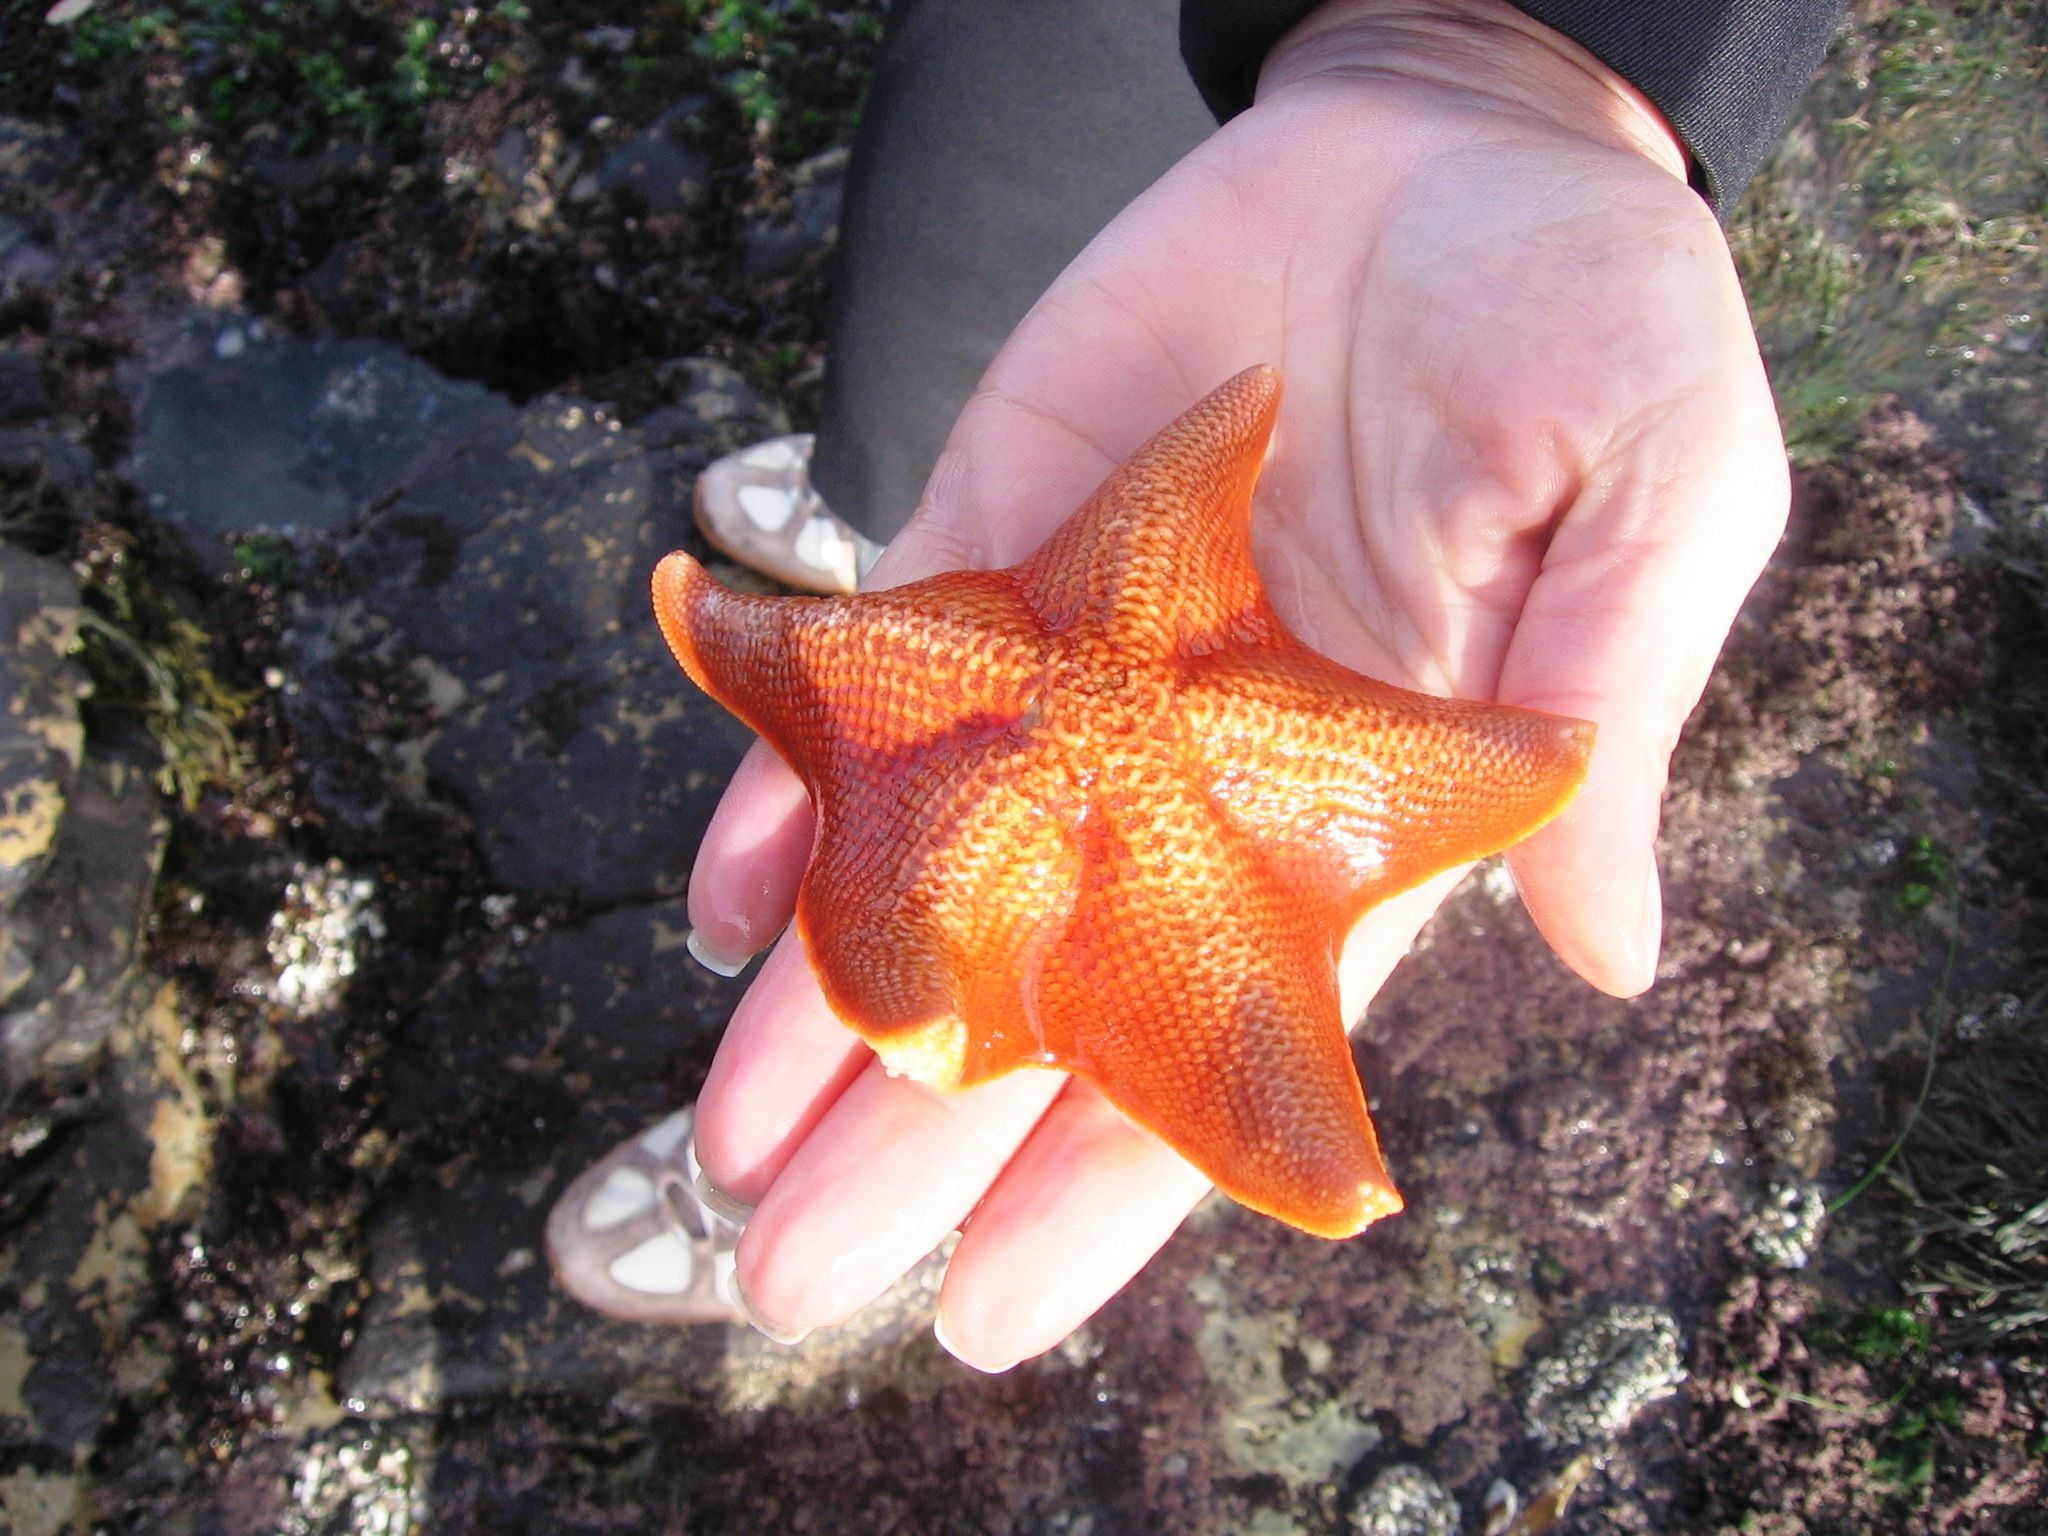 Guadalupe, CA - Oso Flaco Lake and Dunes (State Park) - Starfish